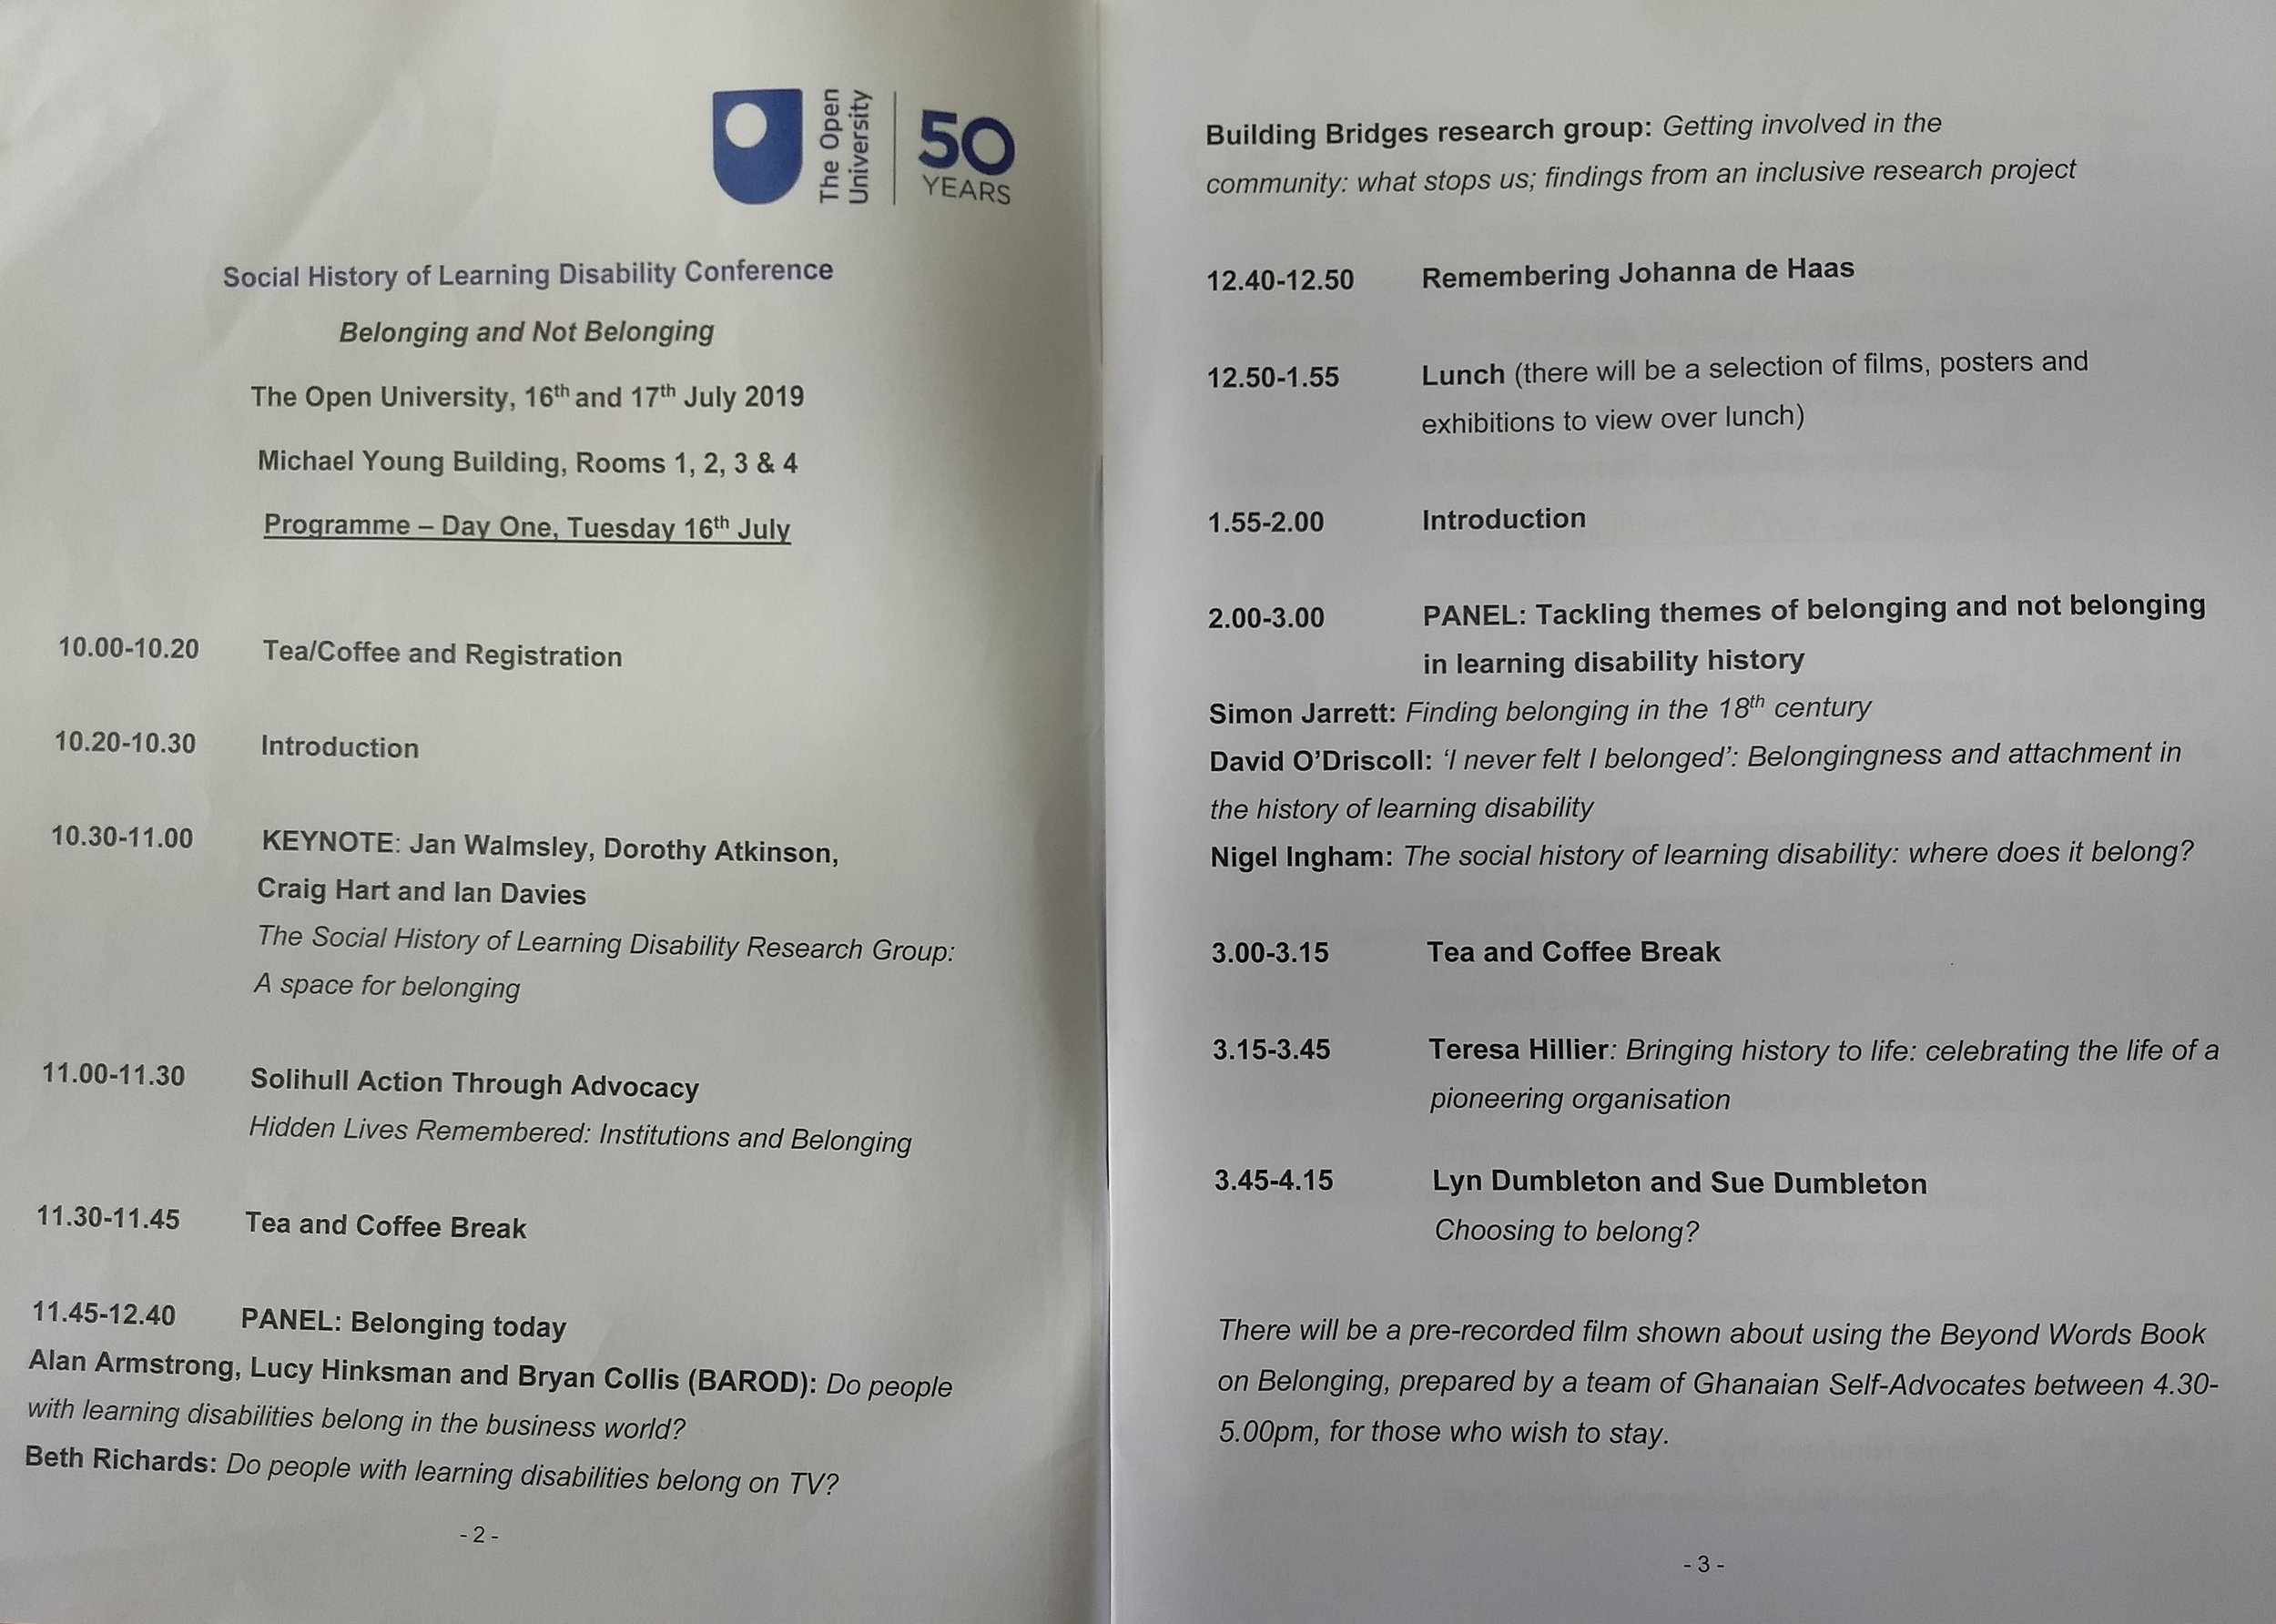 The programme for Tuesday 16th July